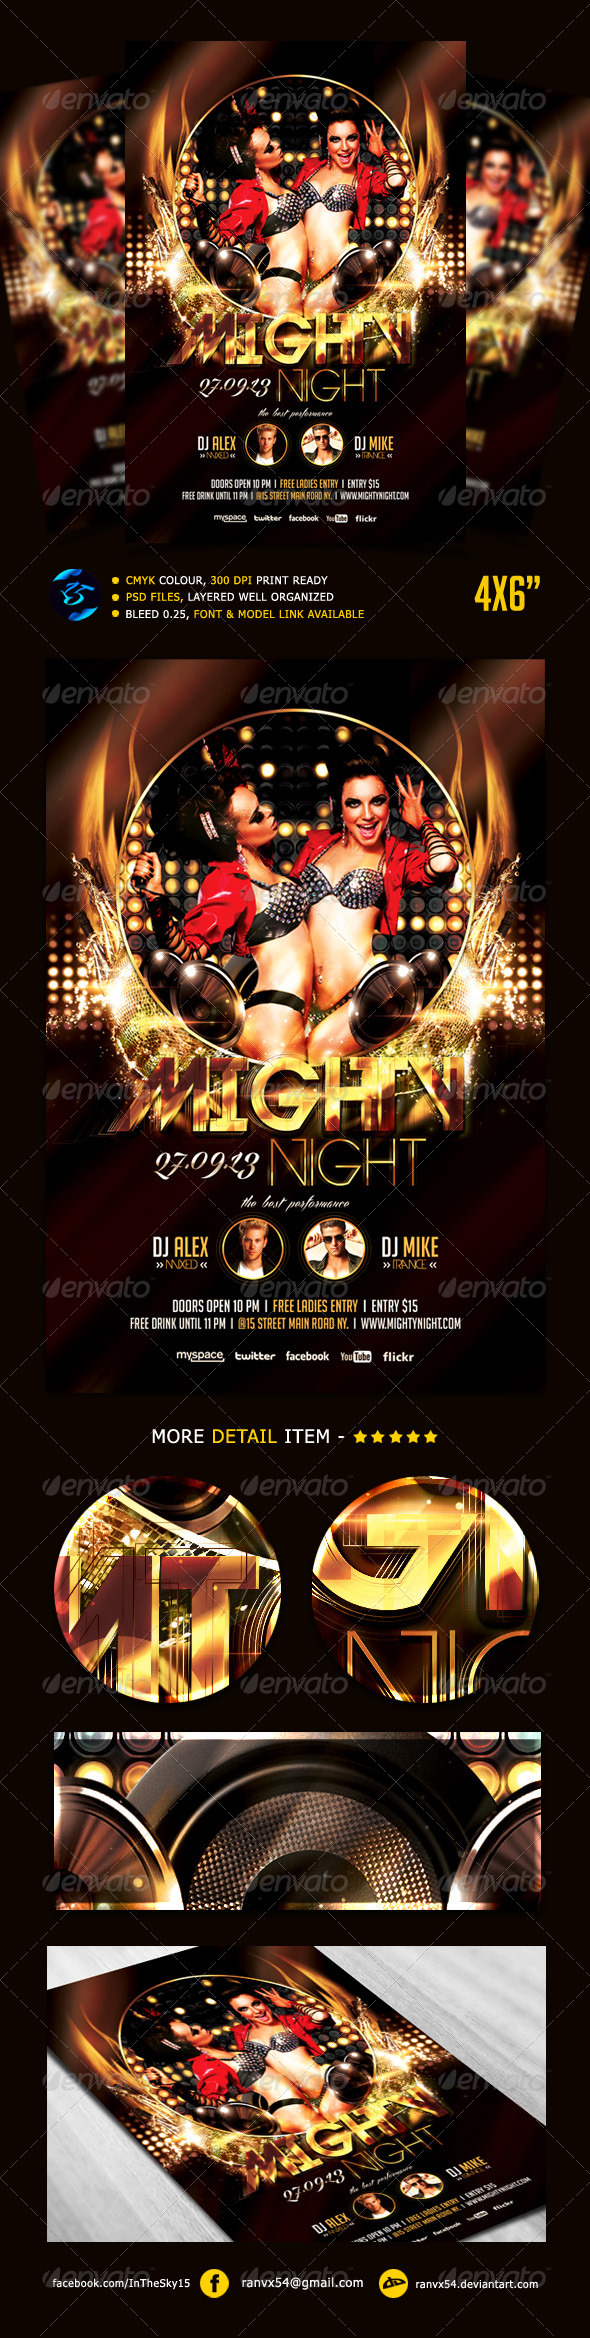 GraphicRiver Mighty Night Flyer Template 5471158